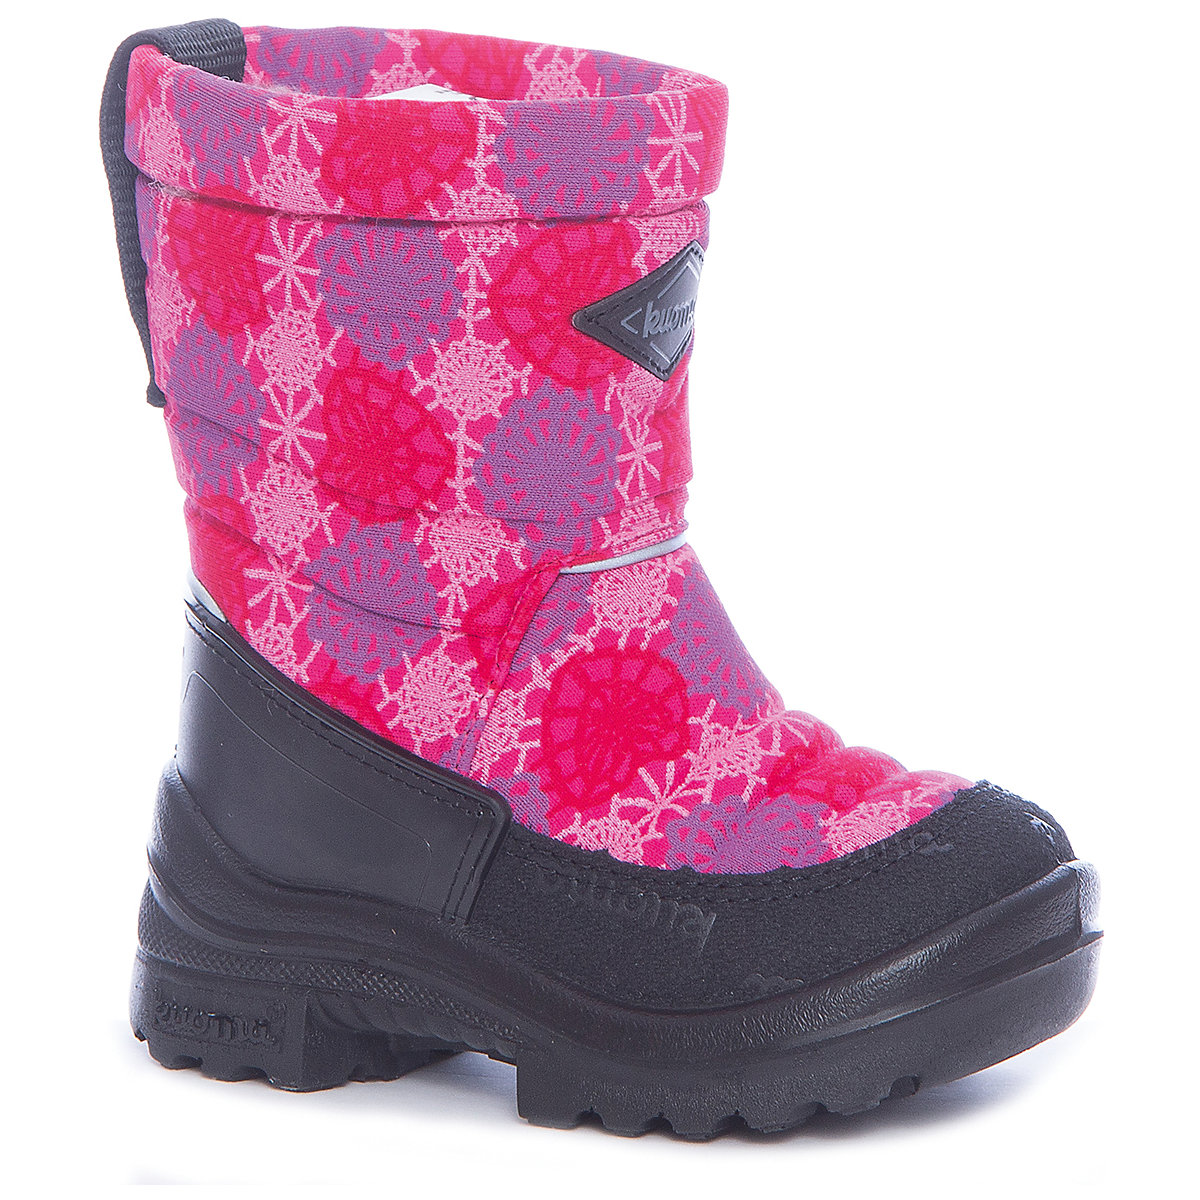 Boots KUOMA For Girls 7047305 Valenki Uggi Winter Baby Kids Children Shoes MTpromo